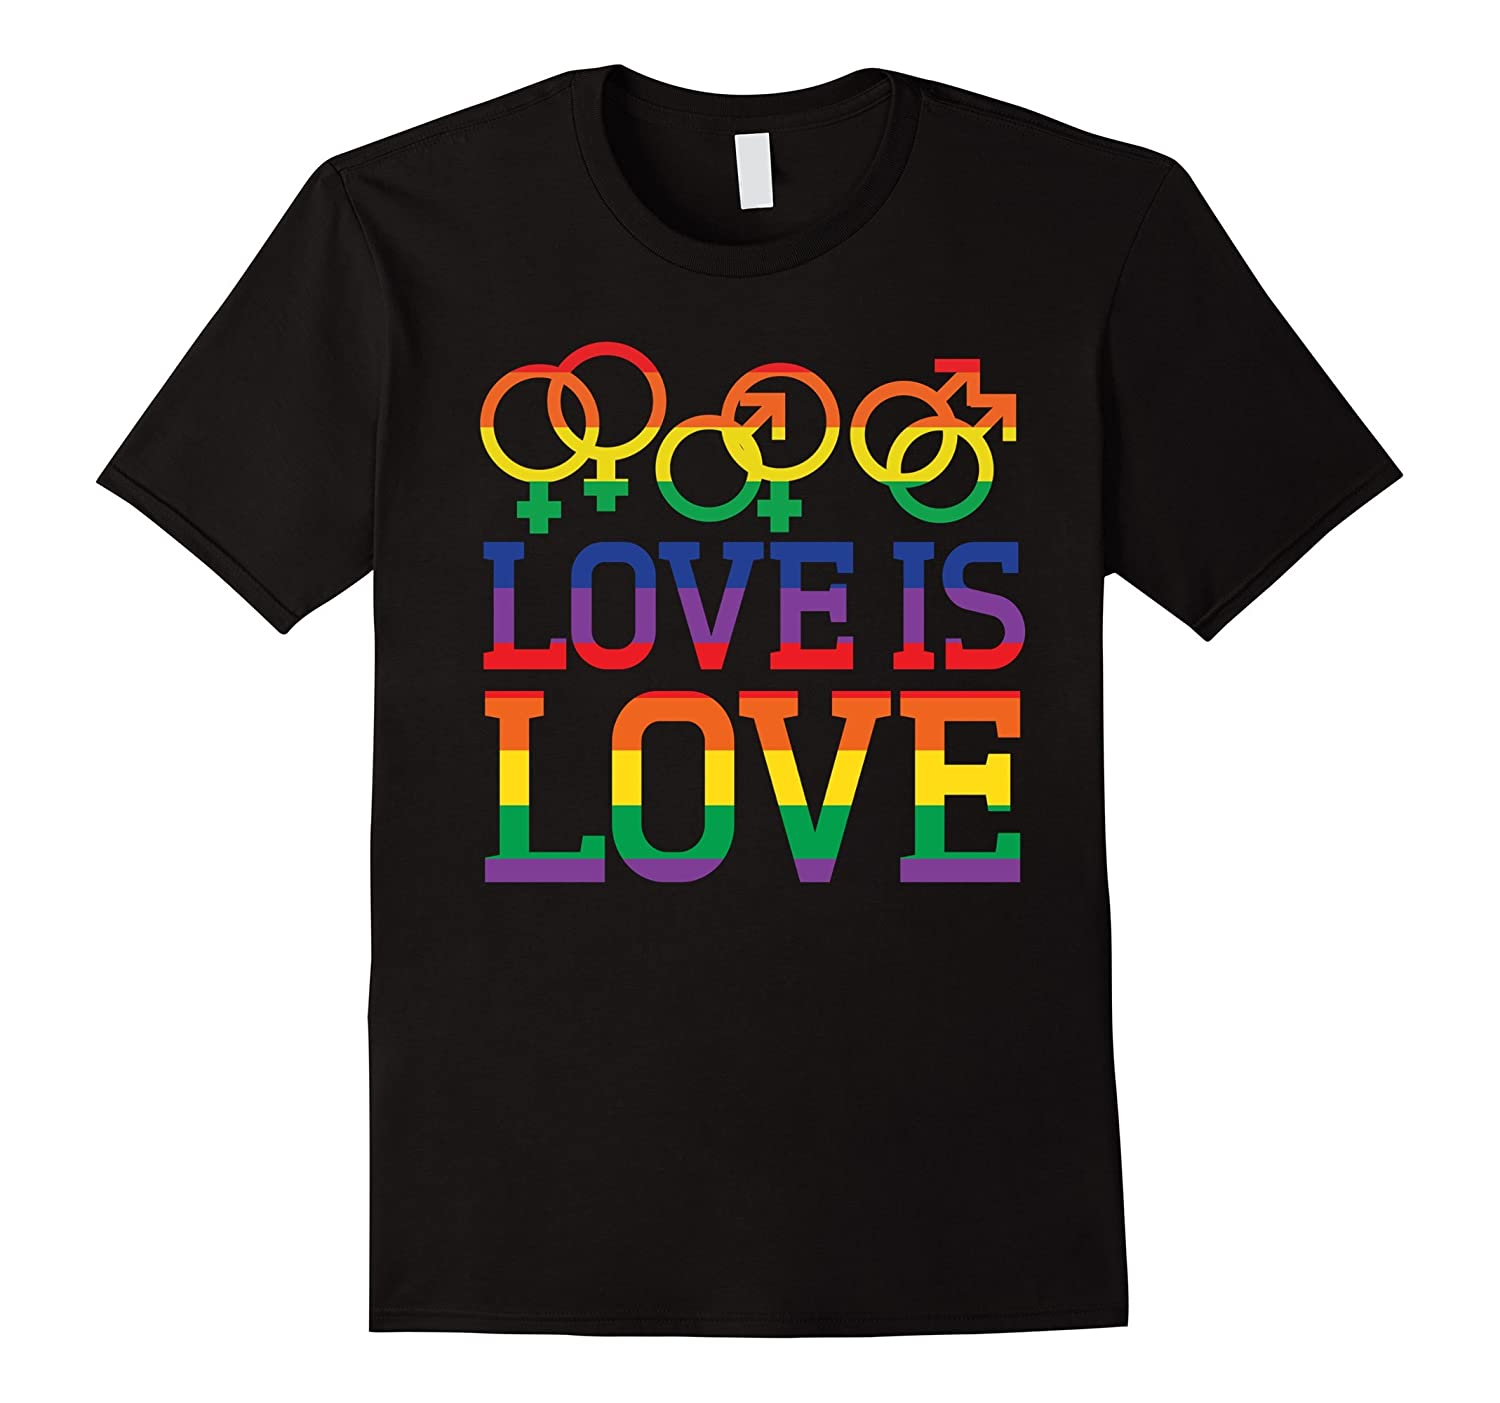 from Levi rainbows not gay tees